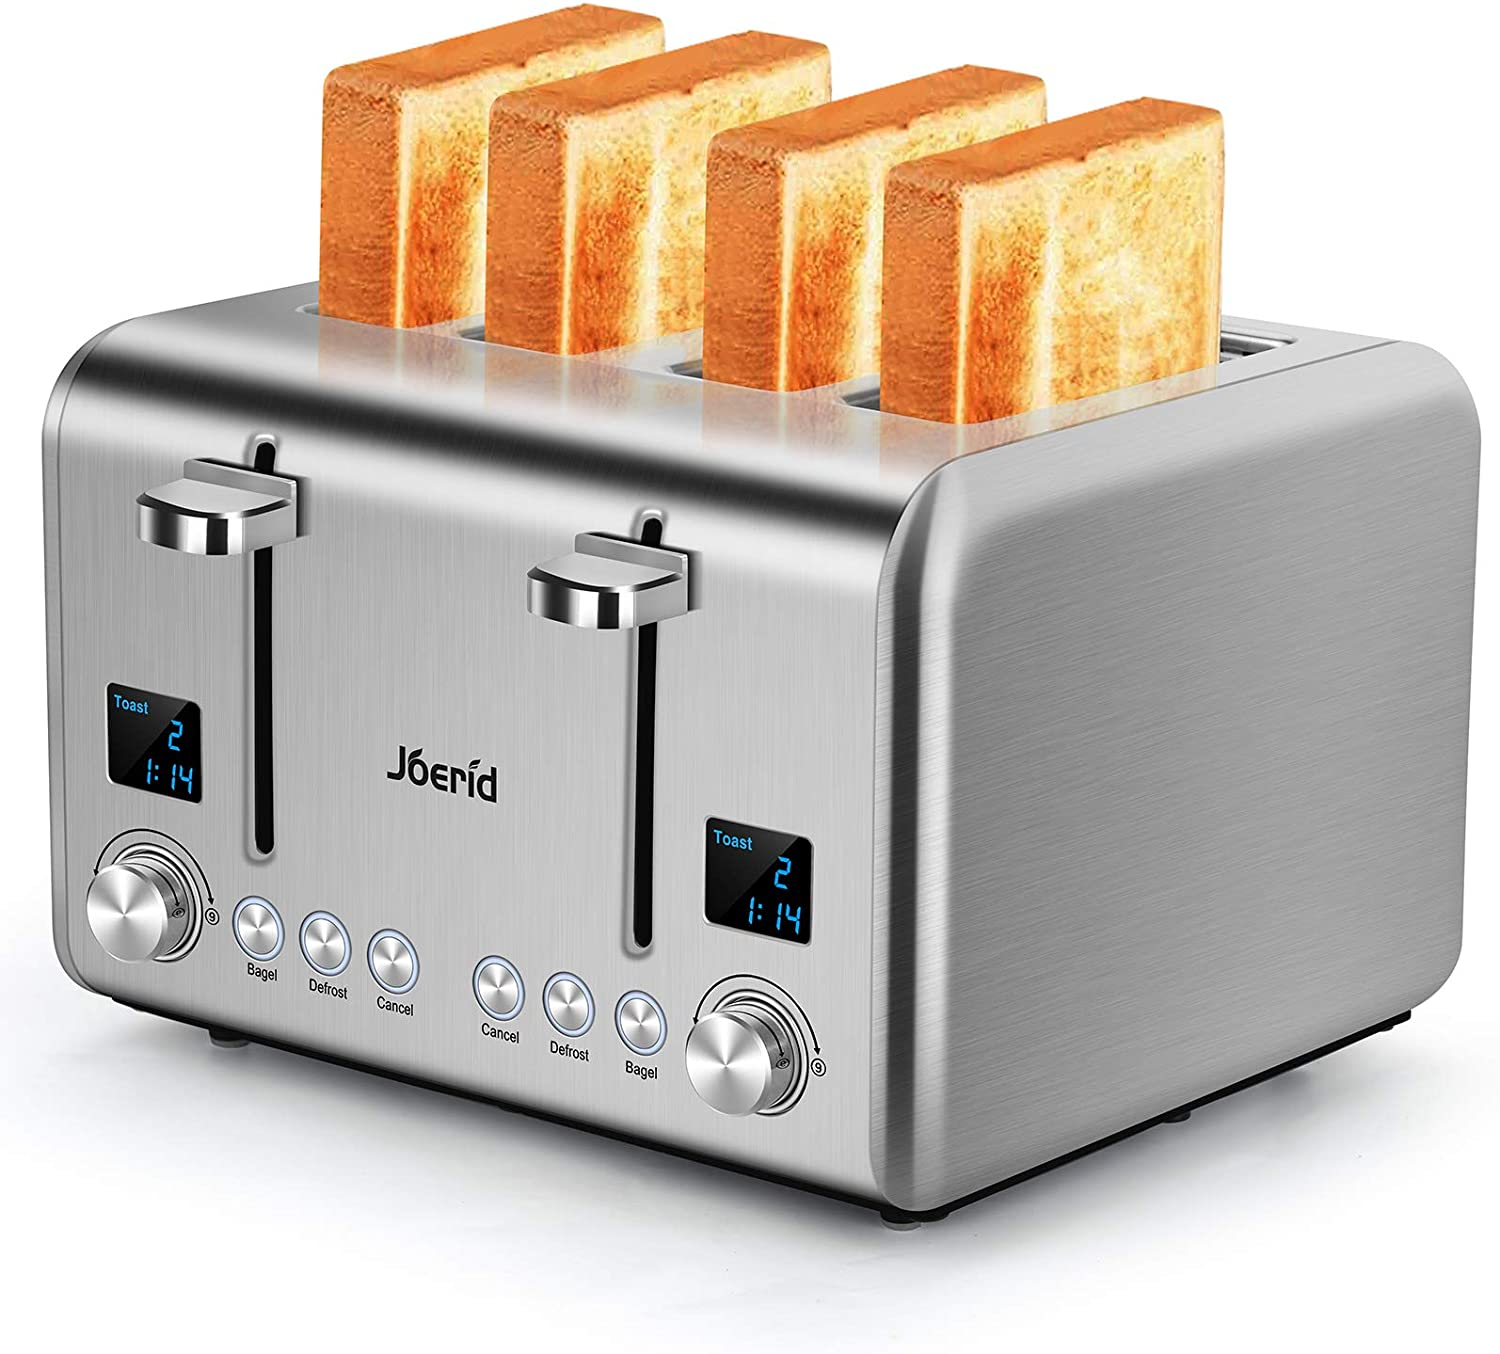 Joerid 4-Slice Toaster,Extra-Wide stainless steel toaster with Timer - Toast - Bake - Broil Settings,Removable Crumb Tray